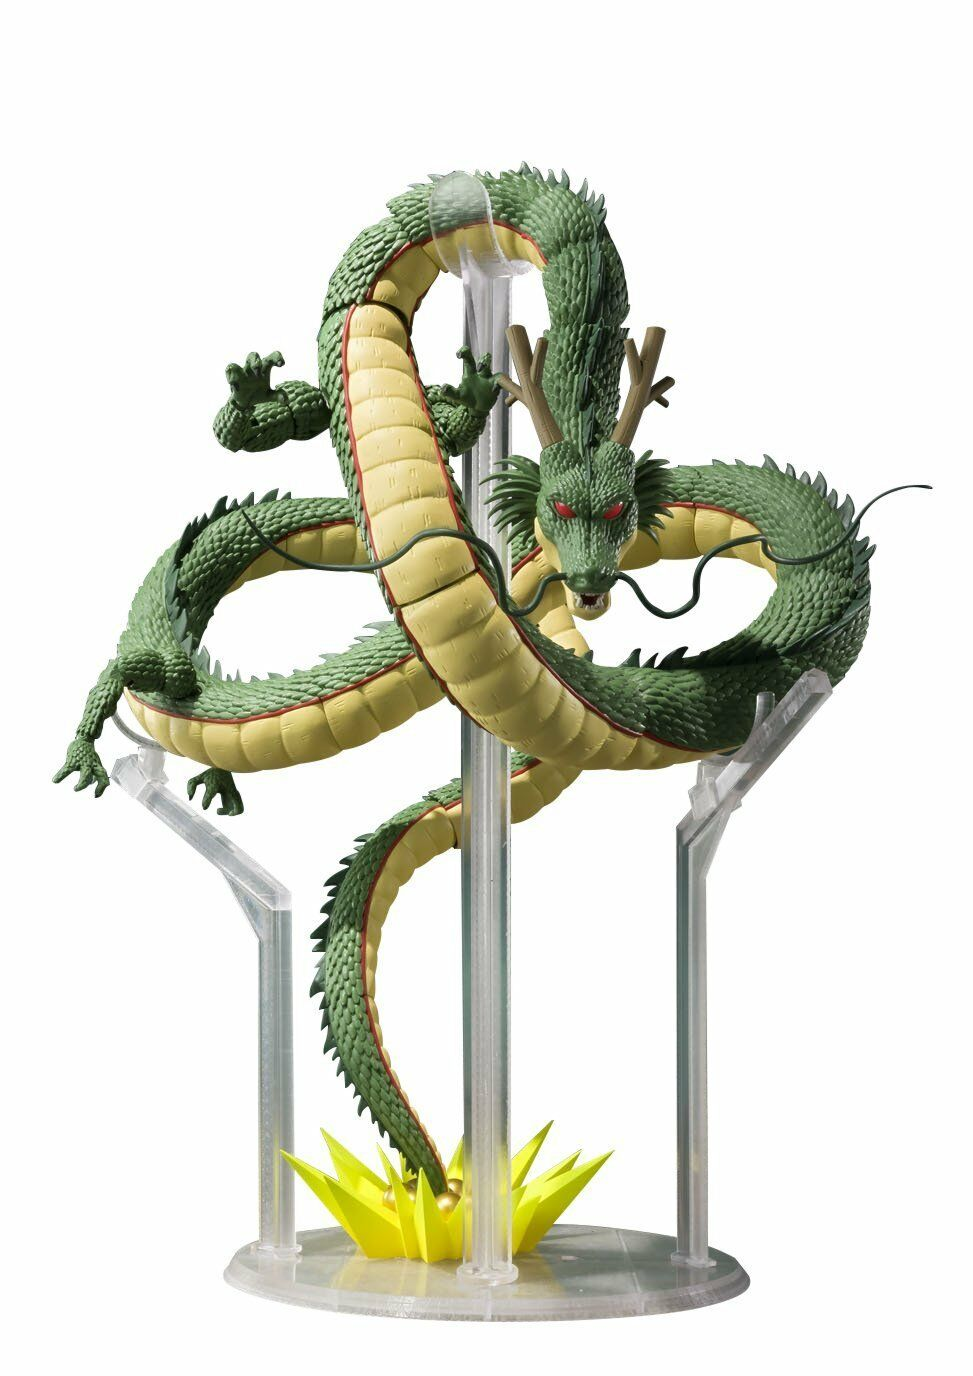 Bandai S.H.Figuart Dragon Ball Z Shenron Japan version